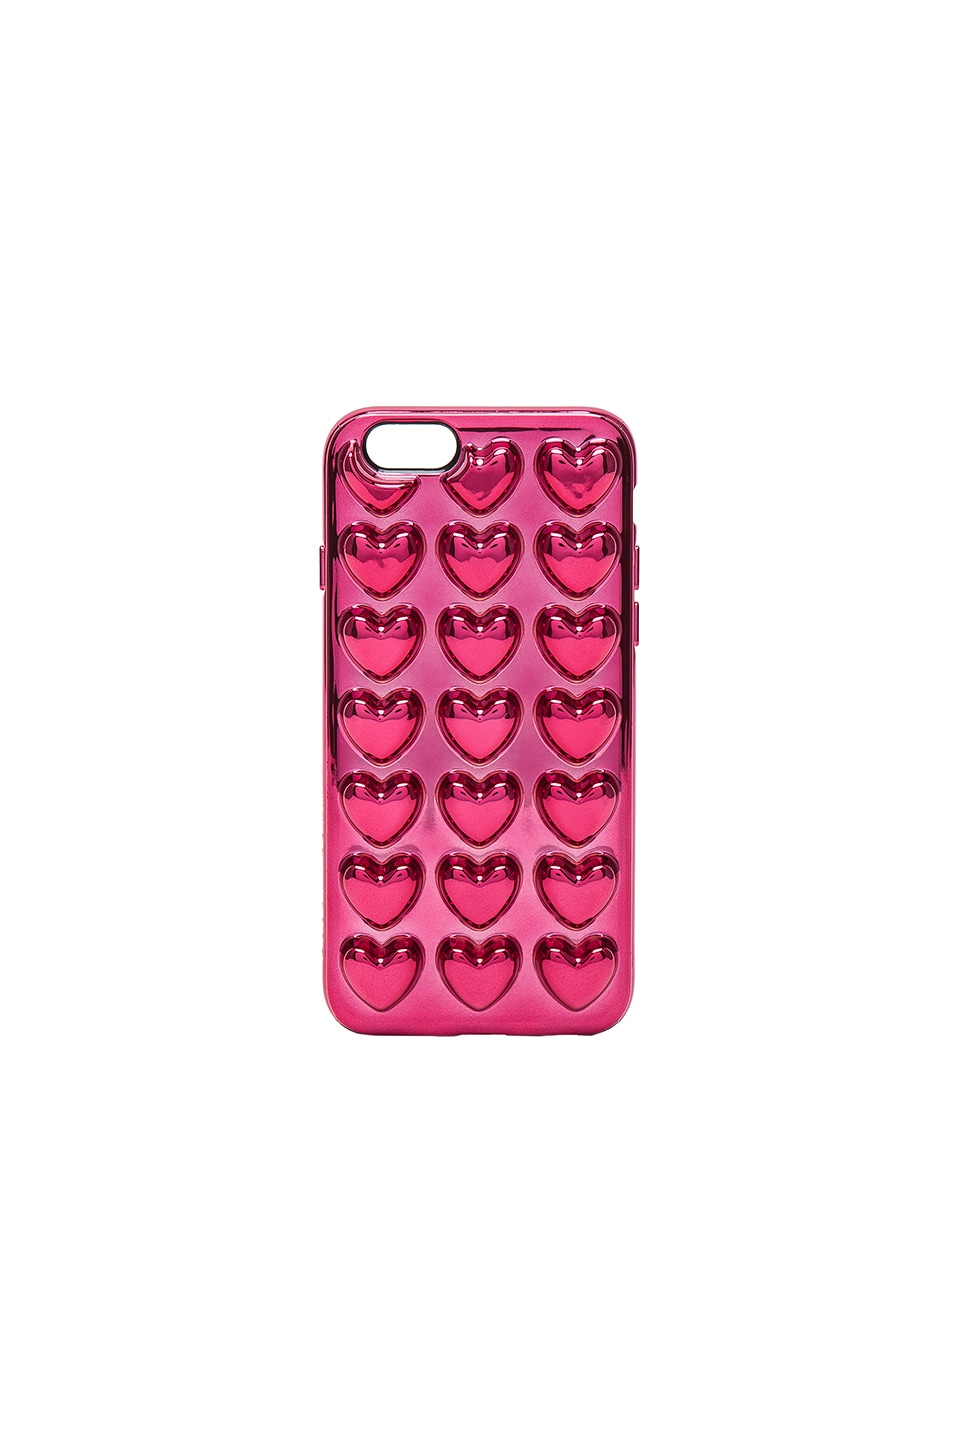 Marc Jacobs Metallic Heart iPhone 6S Case in Magenta